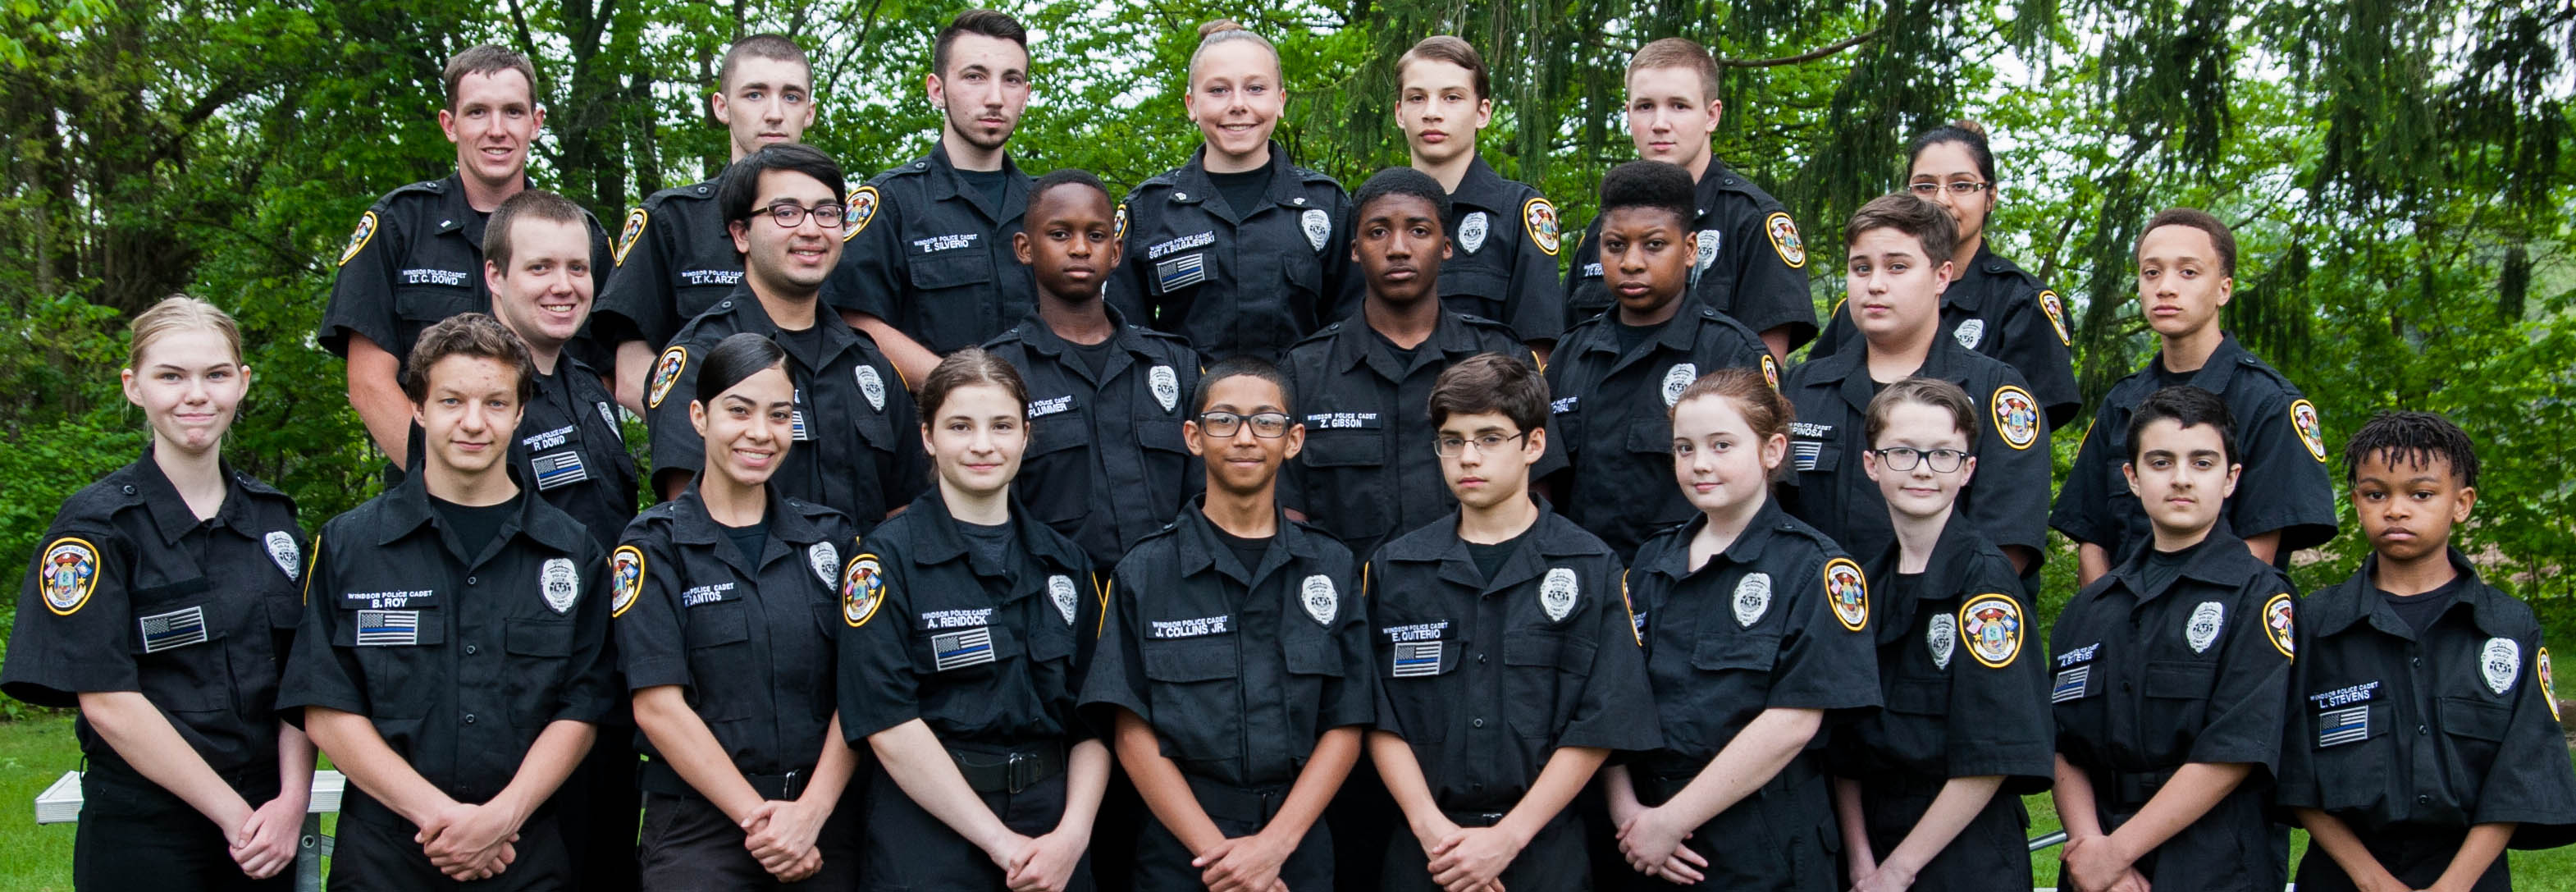 Windsor Police Cadets